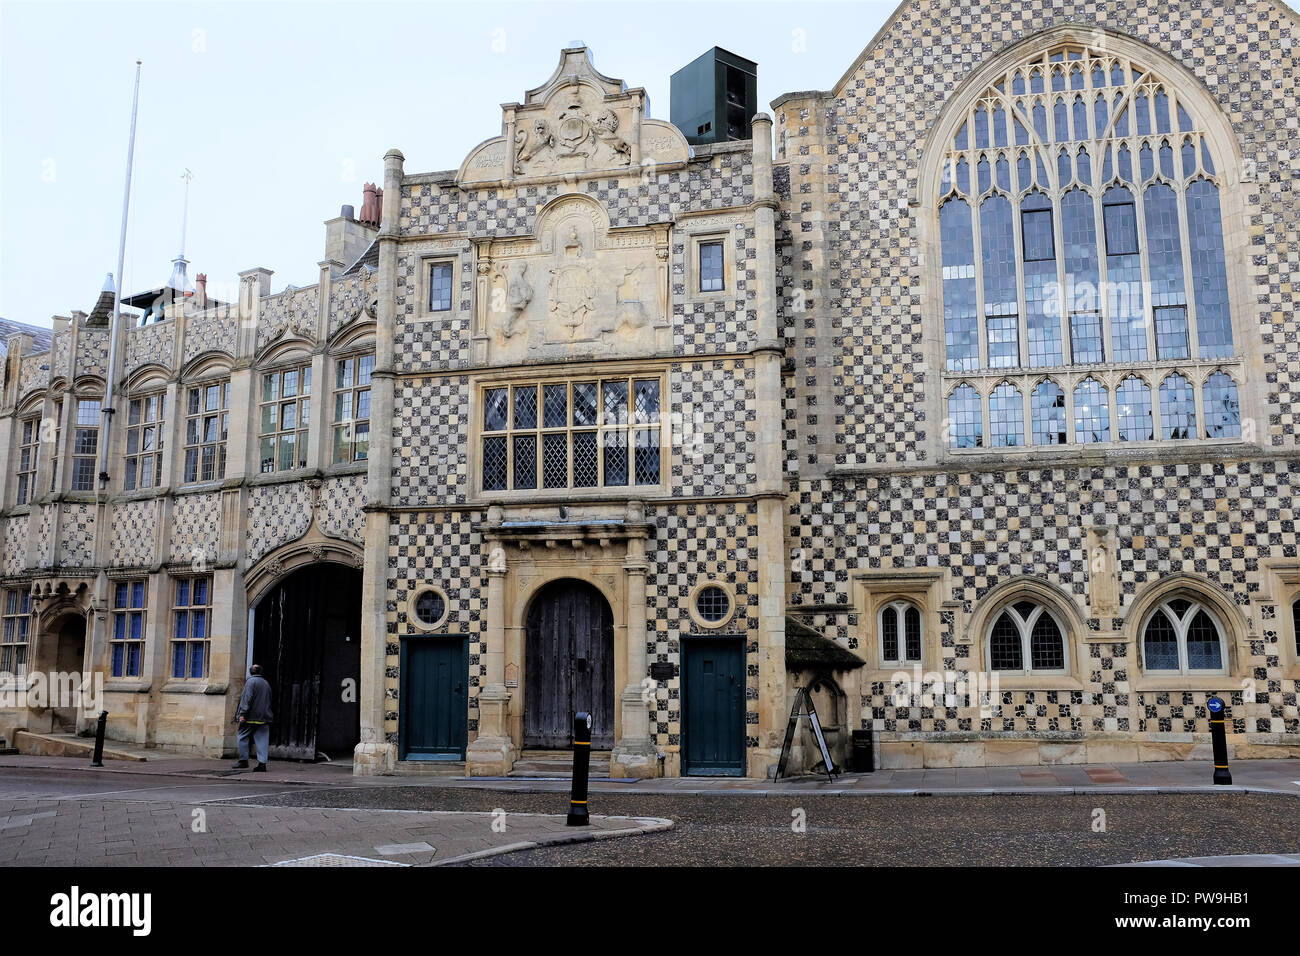 Kings Lynn, Norfolk, UK. September 20, 2018.   The Fiftheen century town hall and Guildhall at Kings Lynn in Norfolk, UK. - Stock Image